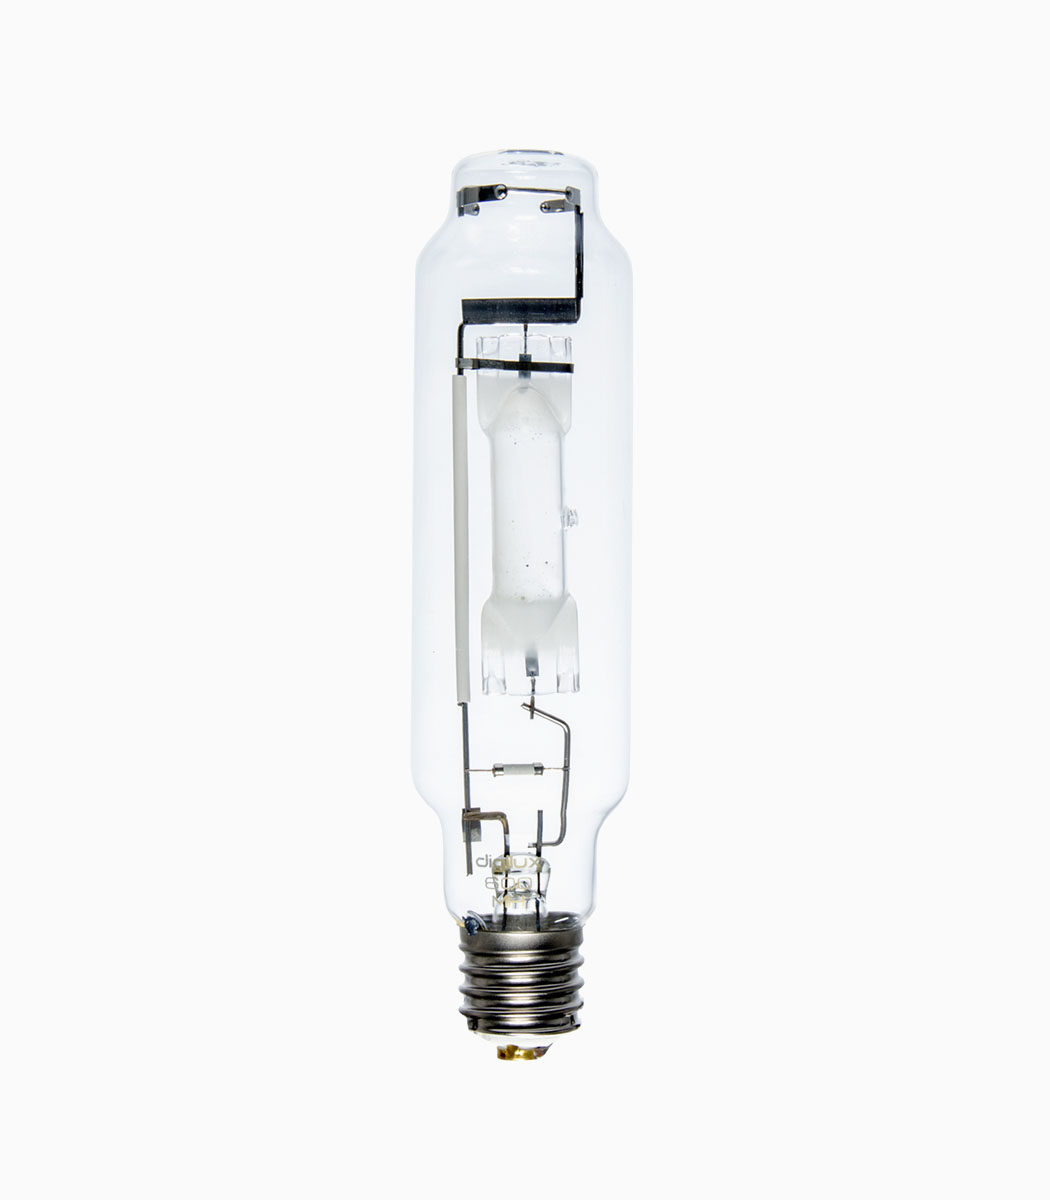 Digilux Digital Metal Halide (MH) Lamp 600W DX600MH